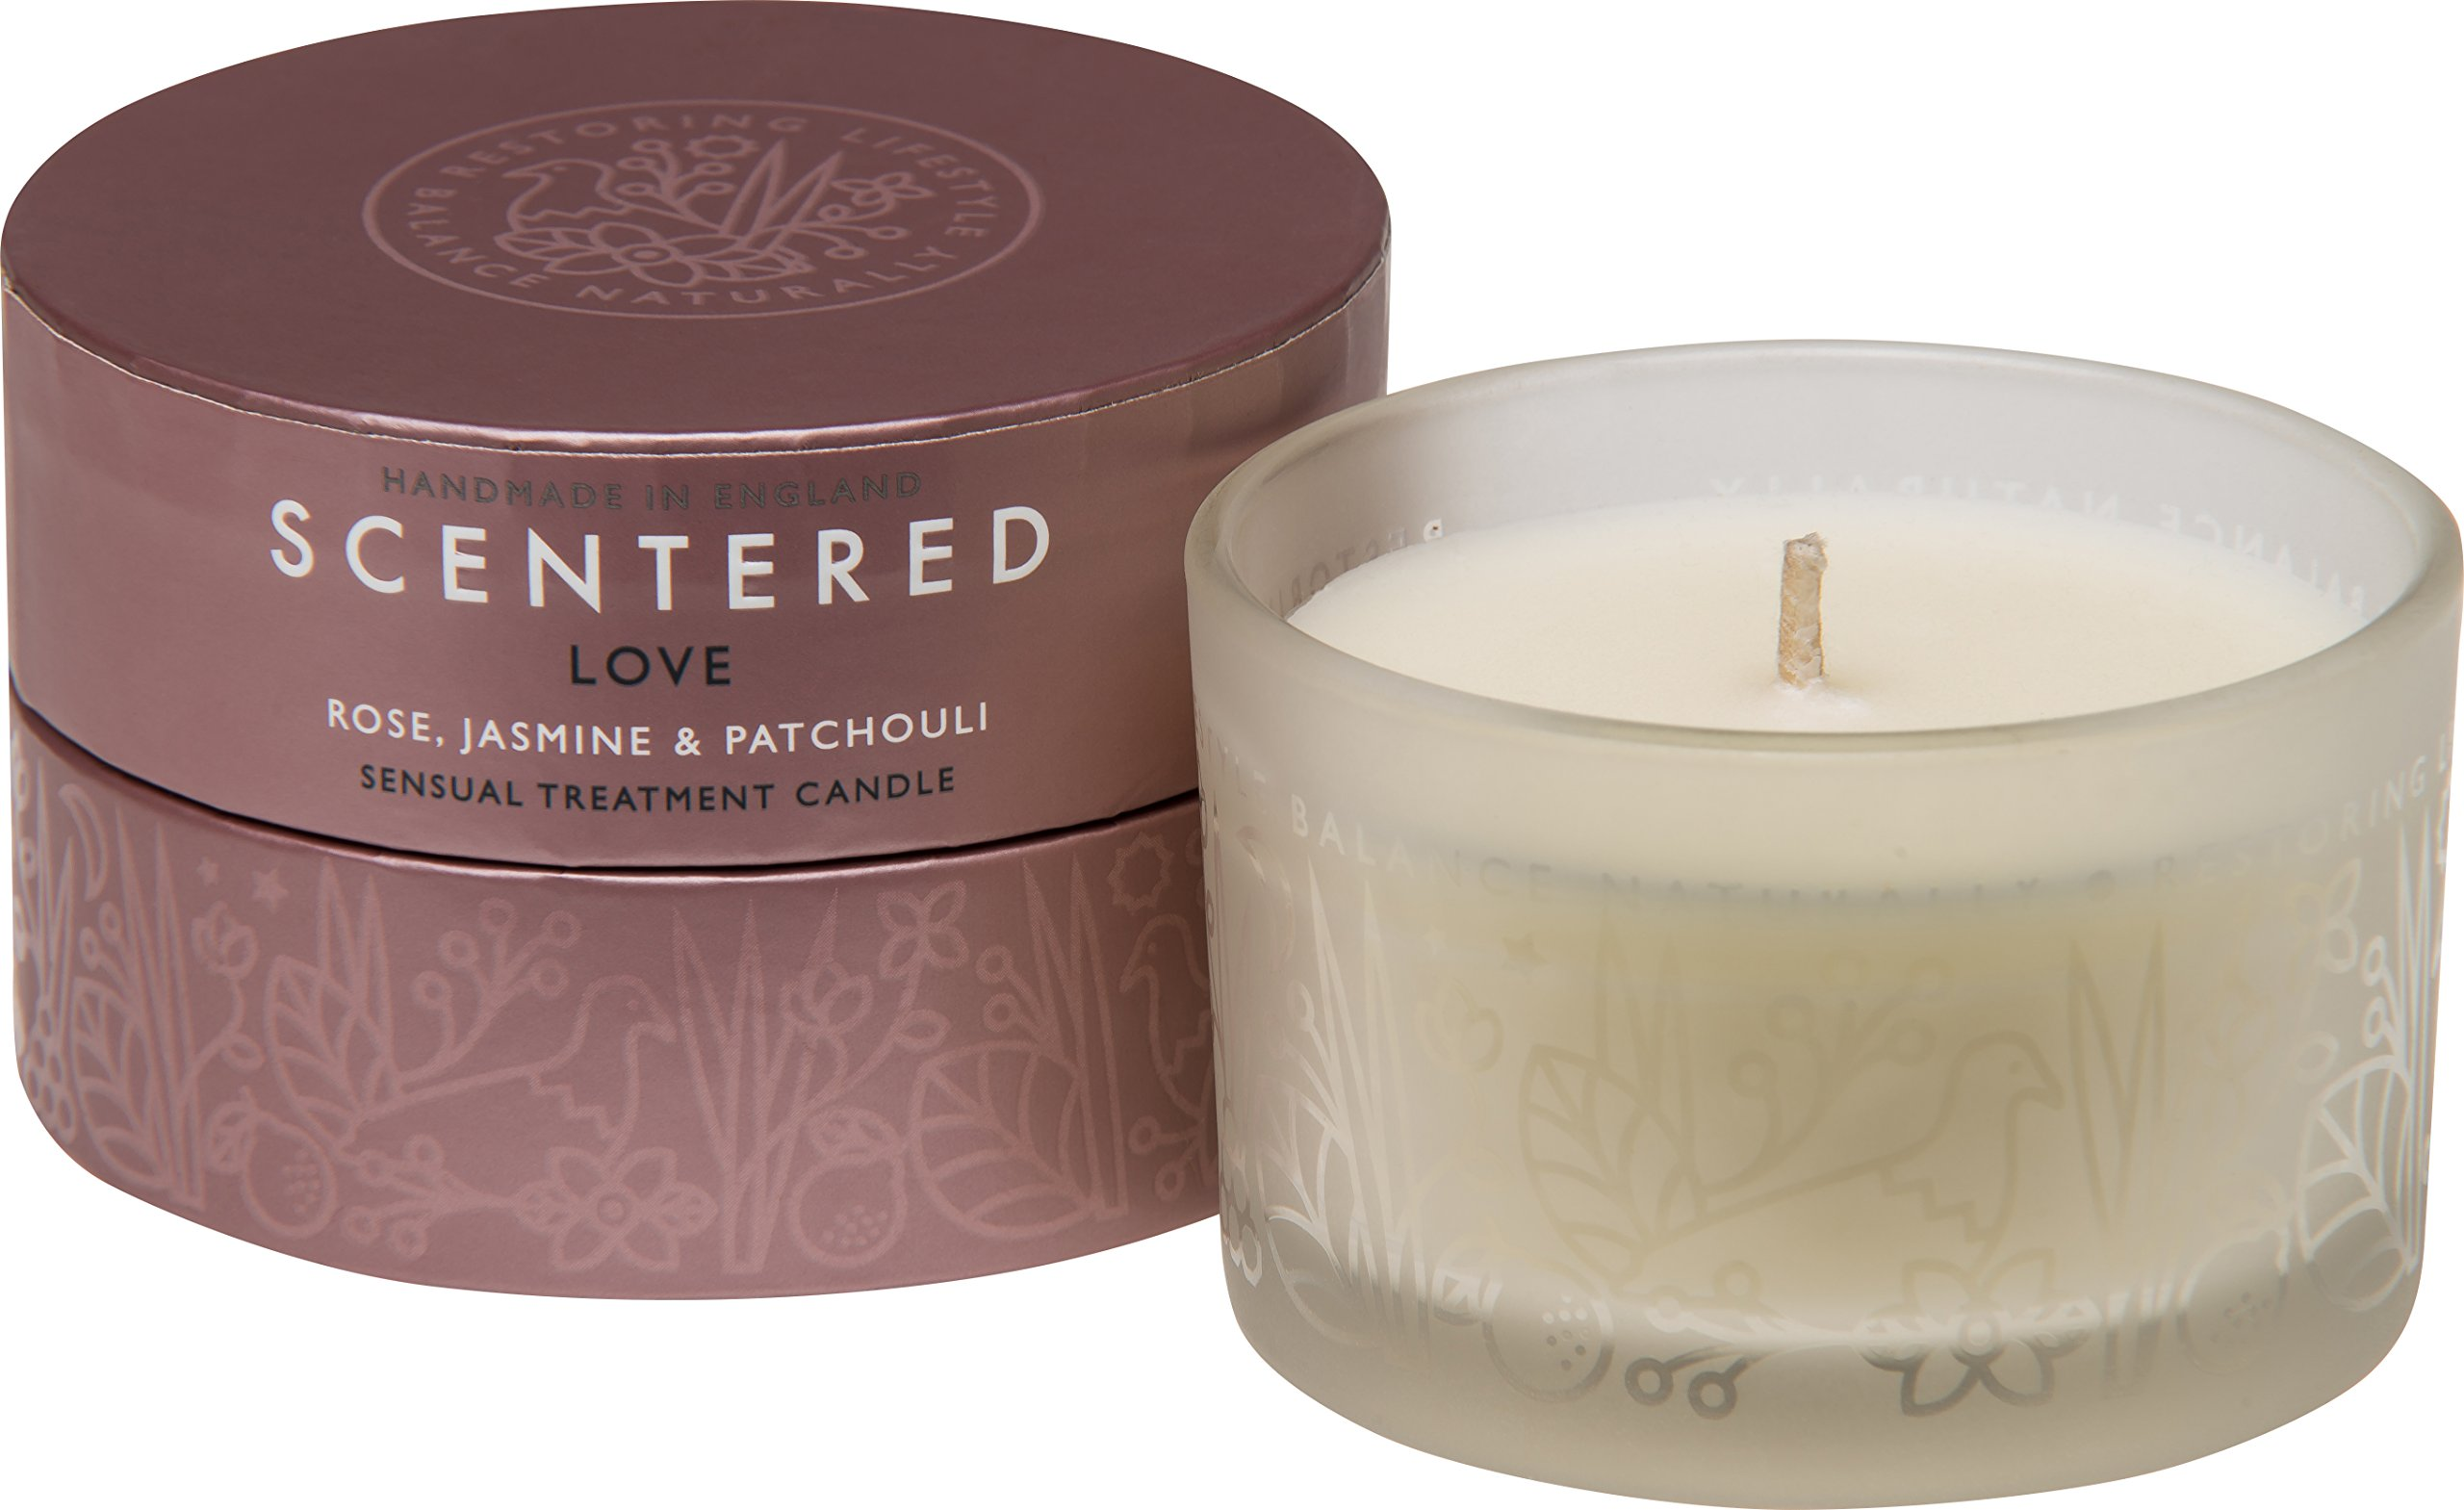 Scentered Aromatherapy Love Travel Candle - Rose/Jasmine Small Scented Therapy Candle